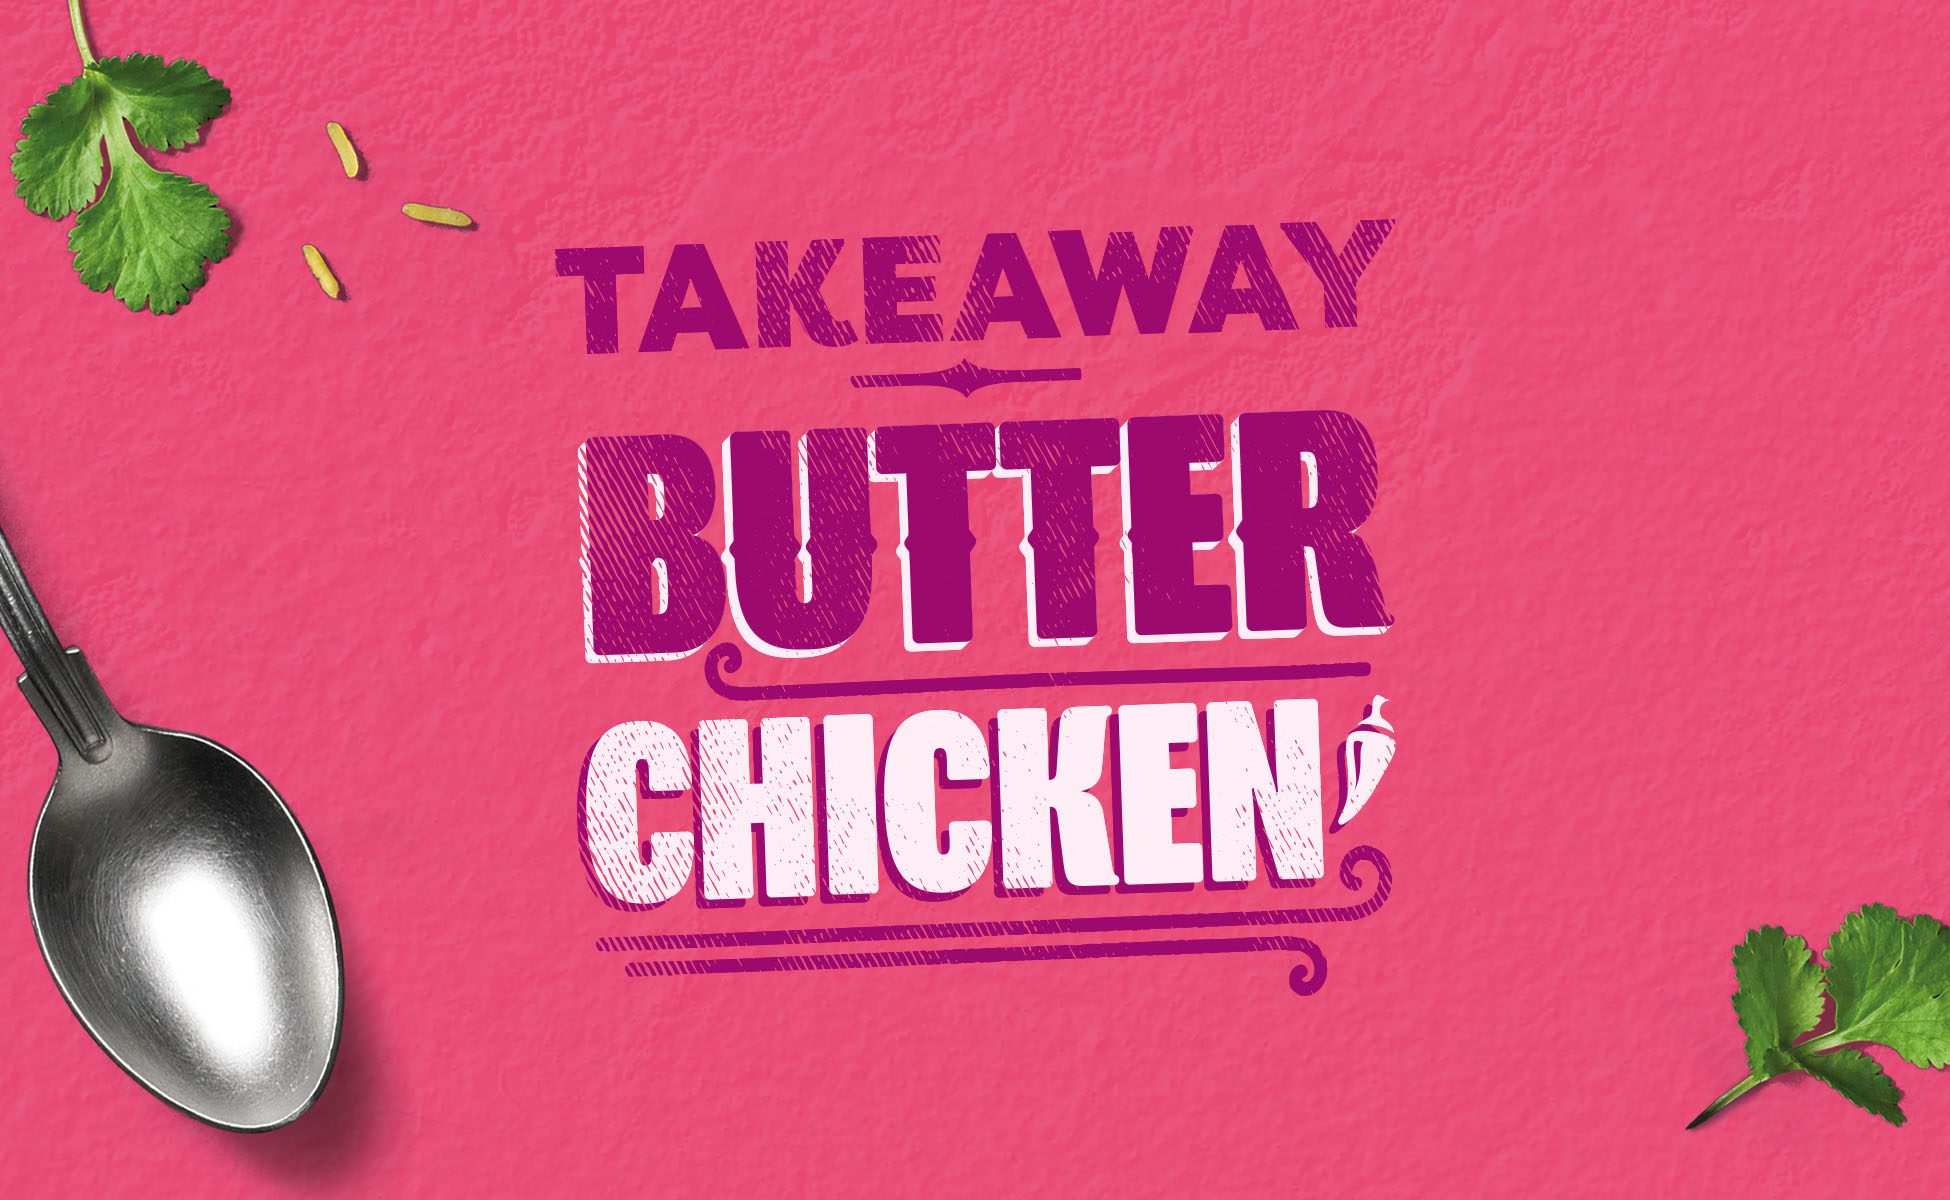 Creative Indian takeaway typography